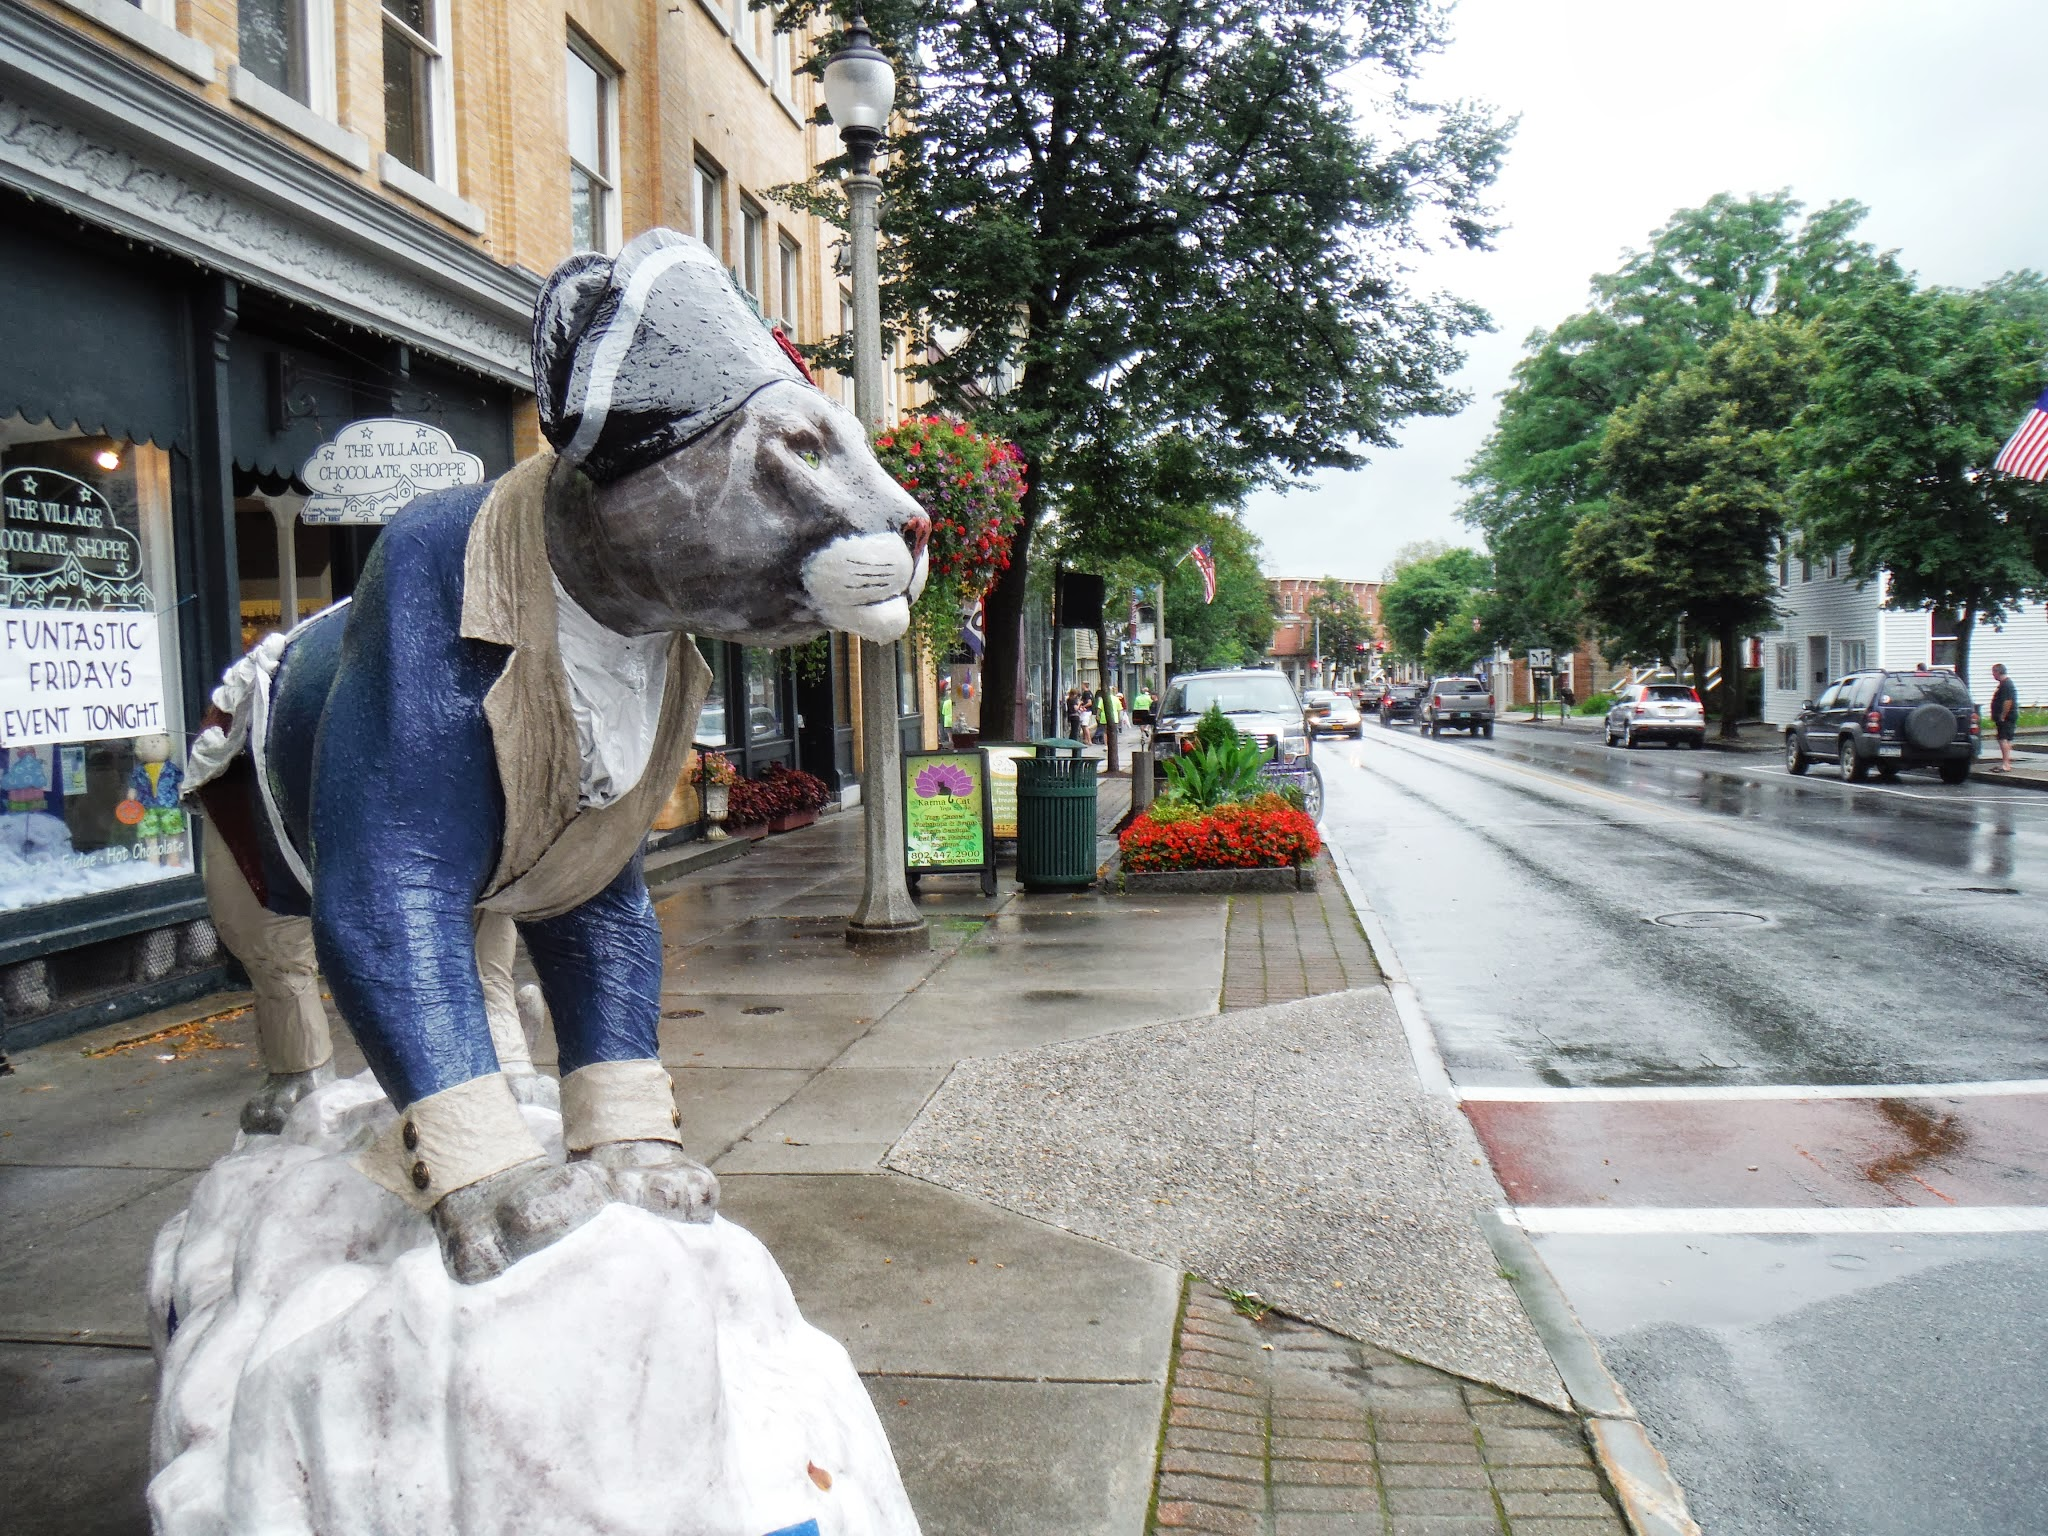 Photo: Day 52 August 9 2013 Latham NY to Bennington VT  In Bennington each year they pick an animal and then make these statues of the animal with different themes. Local artists and students paint the statutes that decorate the city. Later they auction off the works of art.